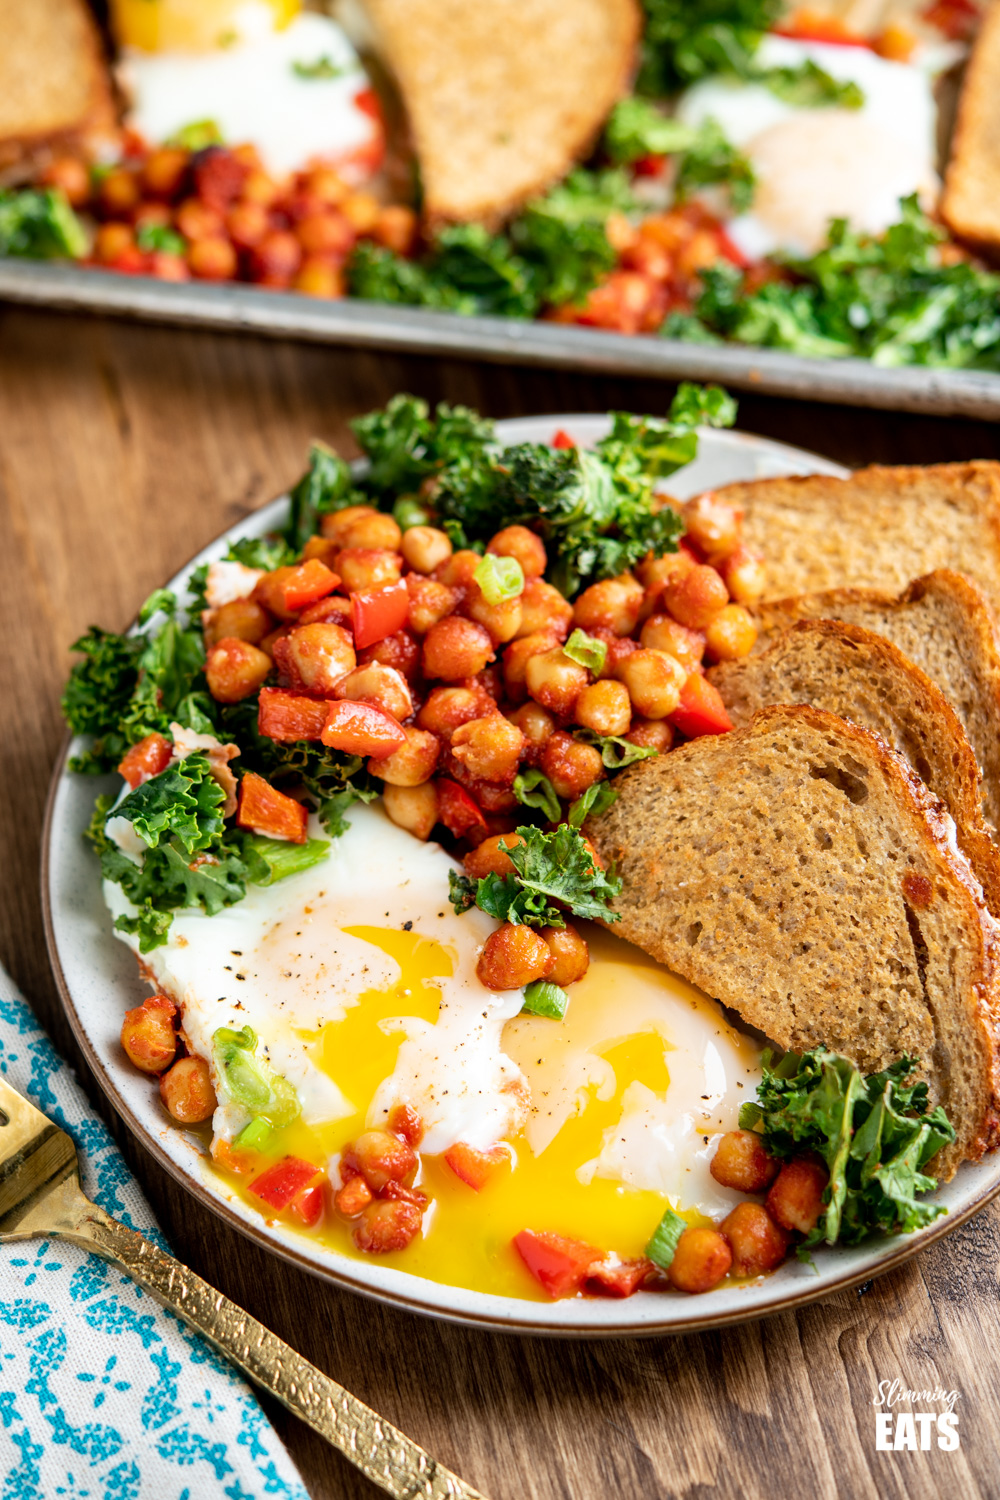 chickpea, egg and kale with crispy toast on plate